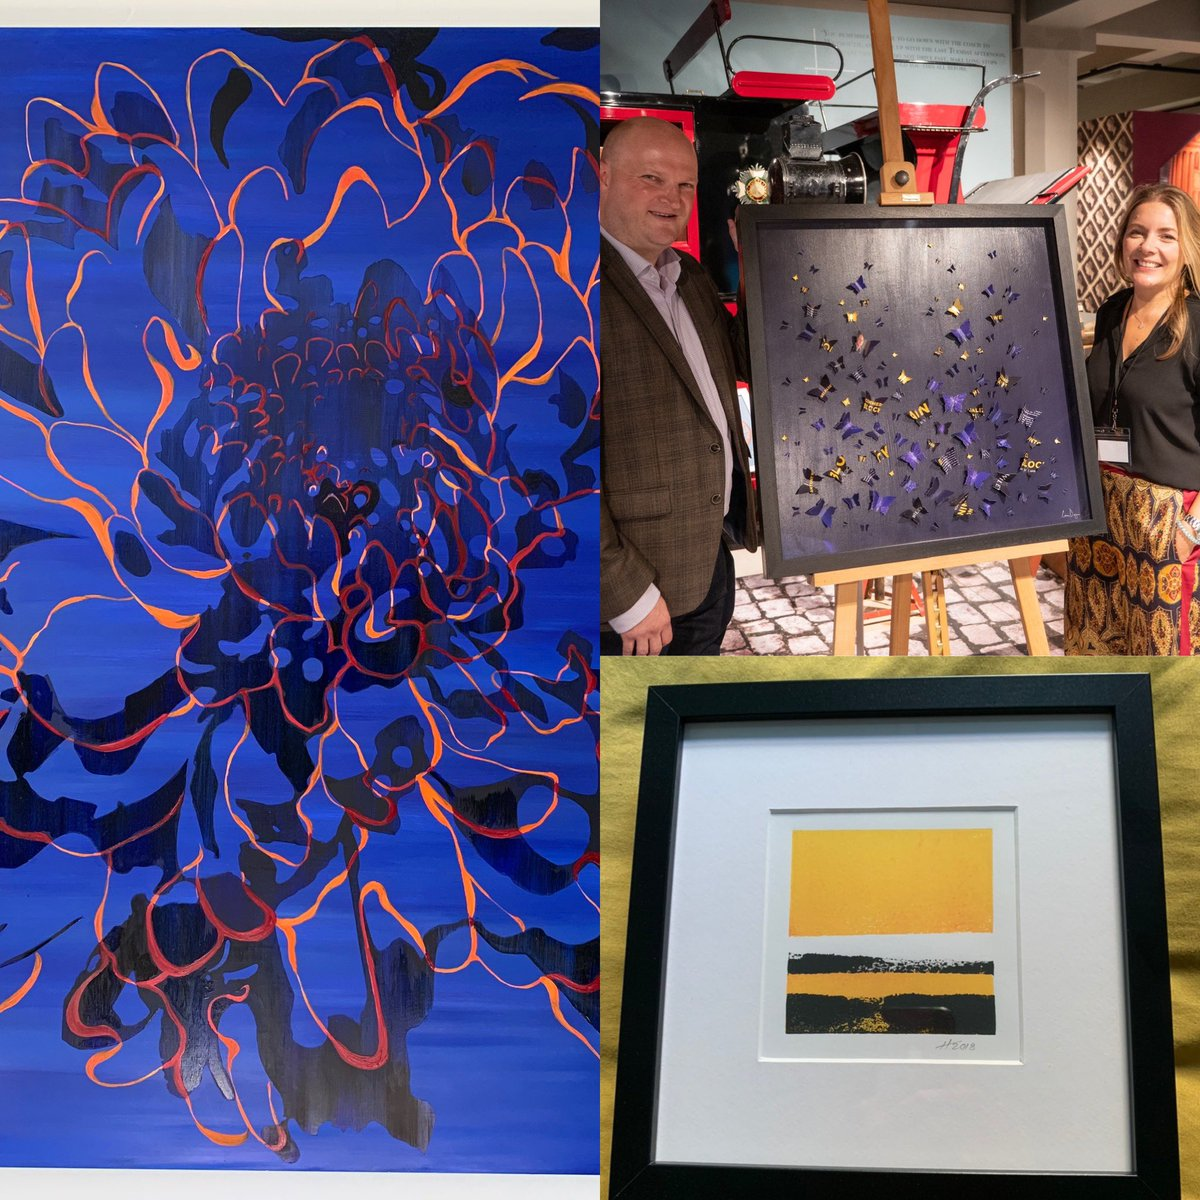 "#thankyou to the #localartist community @HelenBroughArt and her ""Bocca Di leone"" oil on aluminium @lornadoyan and her commission of my book #commercializingblockchain in her #butterfly style @HamishMacaulay and his ""Glorious day"" in our favourite #yellow #highgatepic.twitter.com/CA60s5kzlm – at Parkland Walk (Crouch End to Highgate section)"